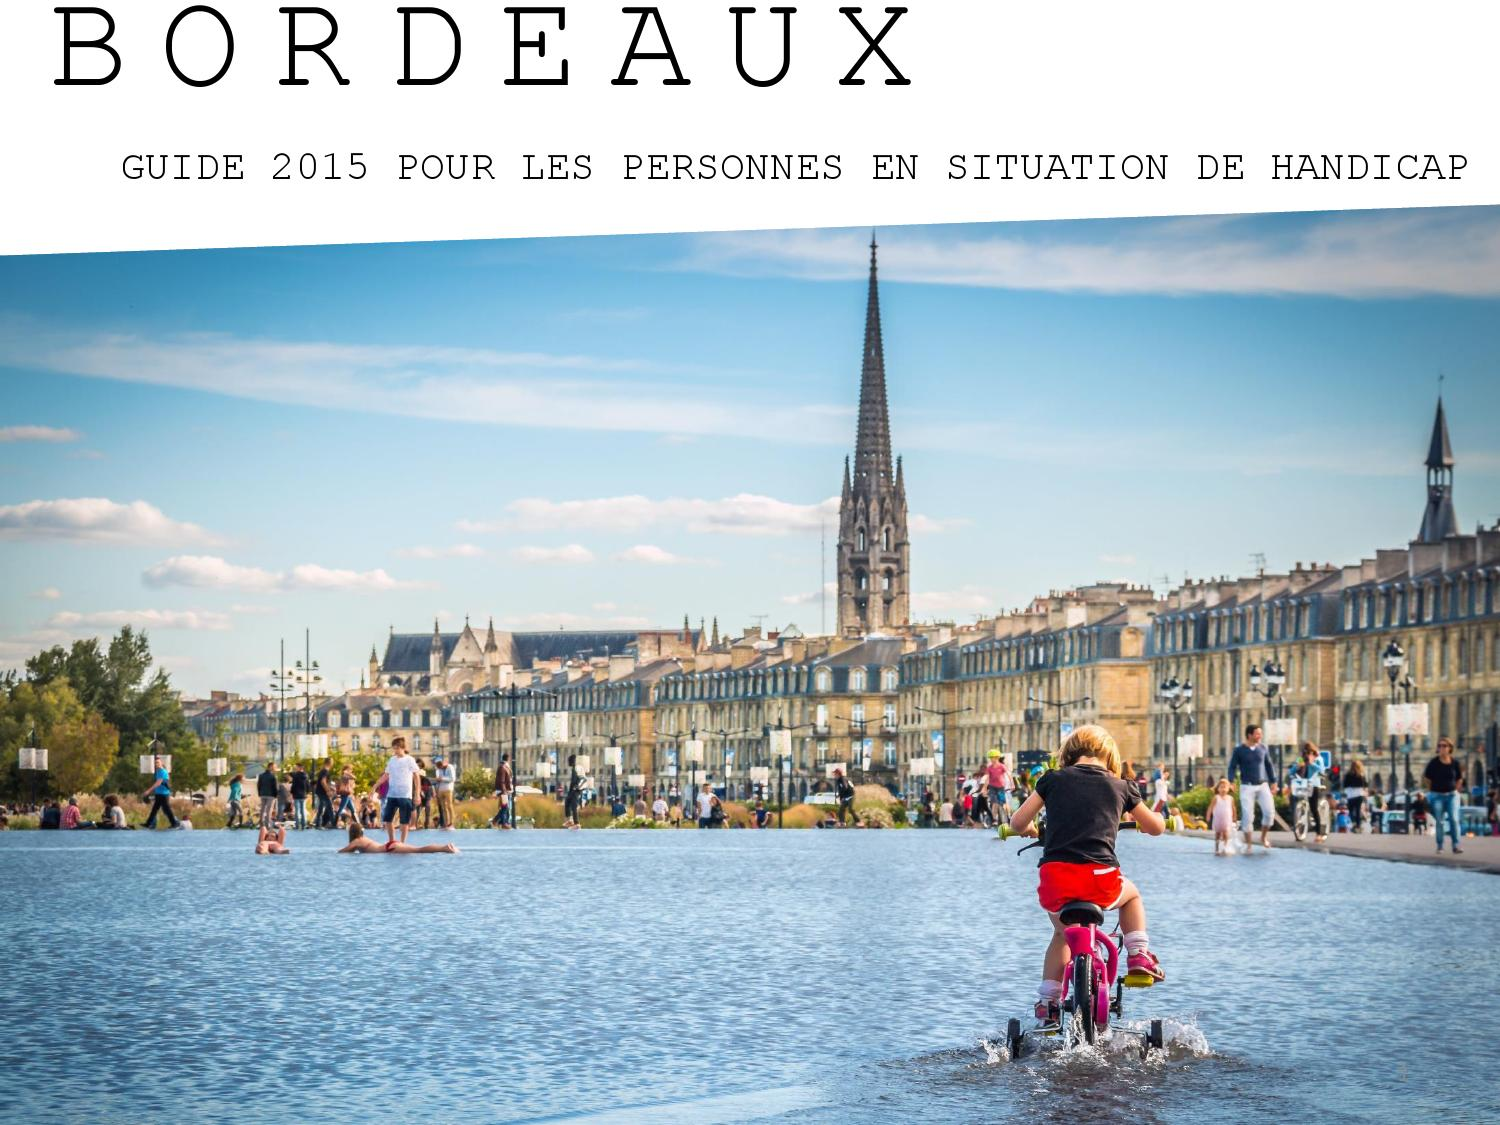 Bordeaux guide handicap 2015 by office de tourisme de bordeaux m tropole issuu - Office du tourisme de bordeaux ...